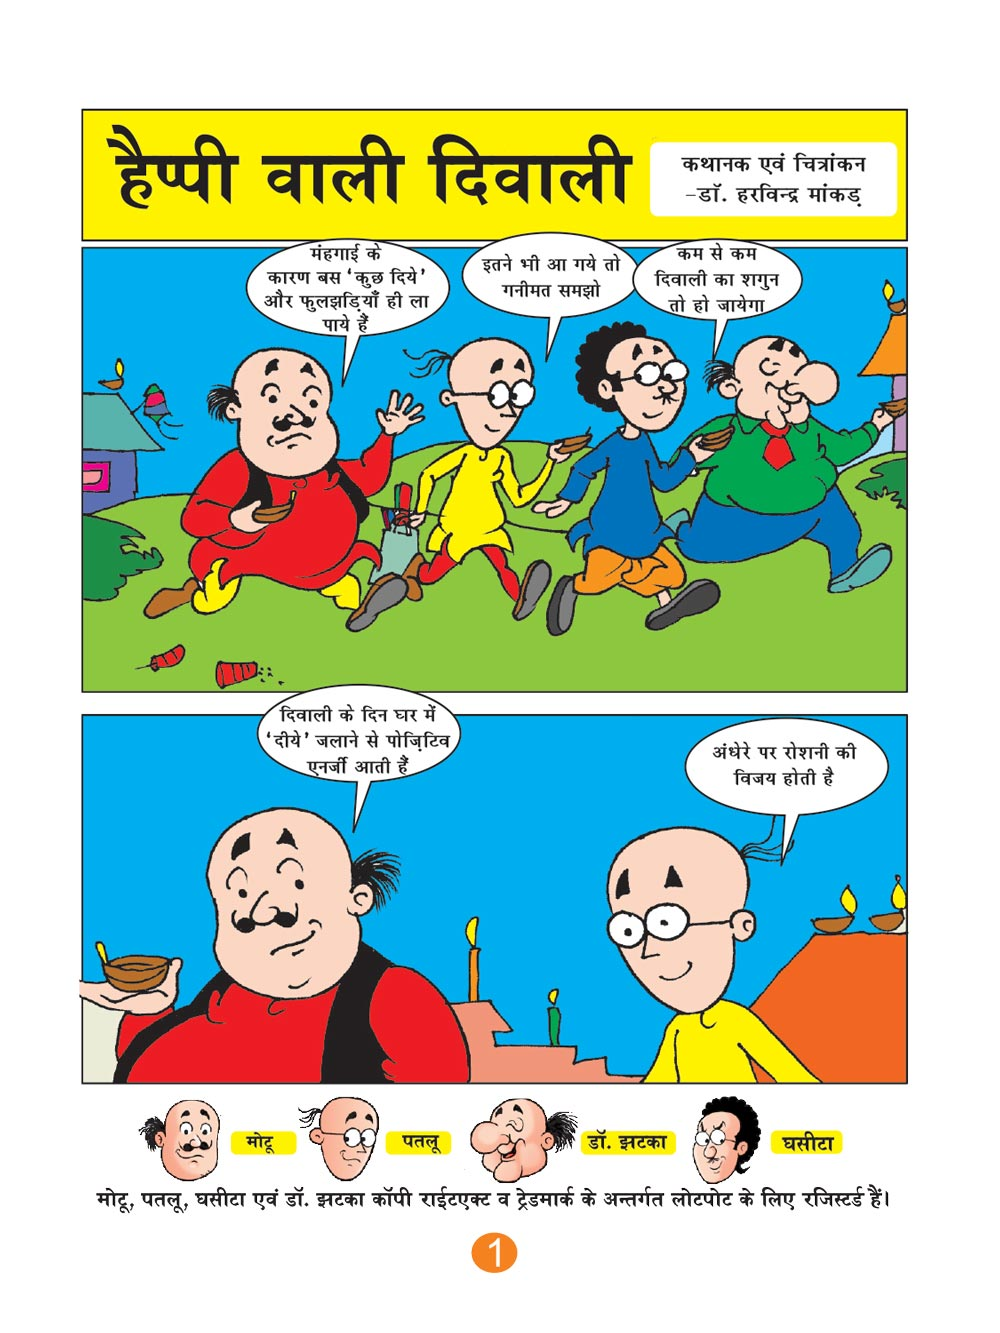 Motu patlu and happy wali diwali